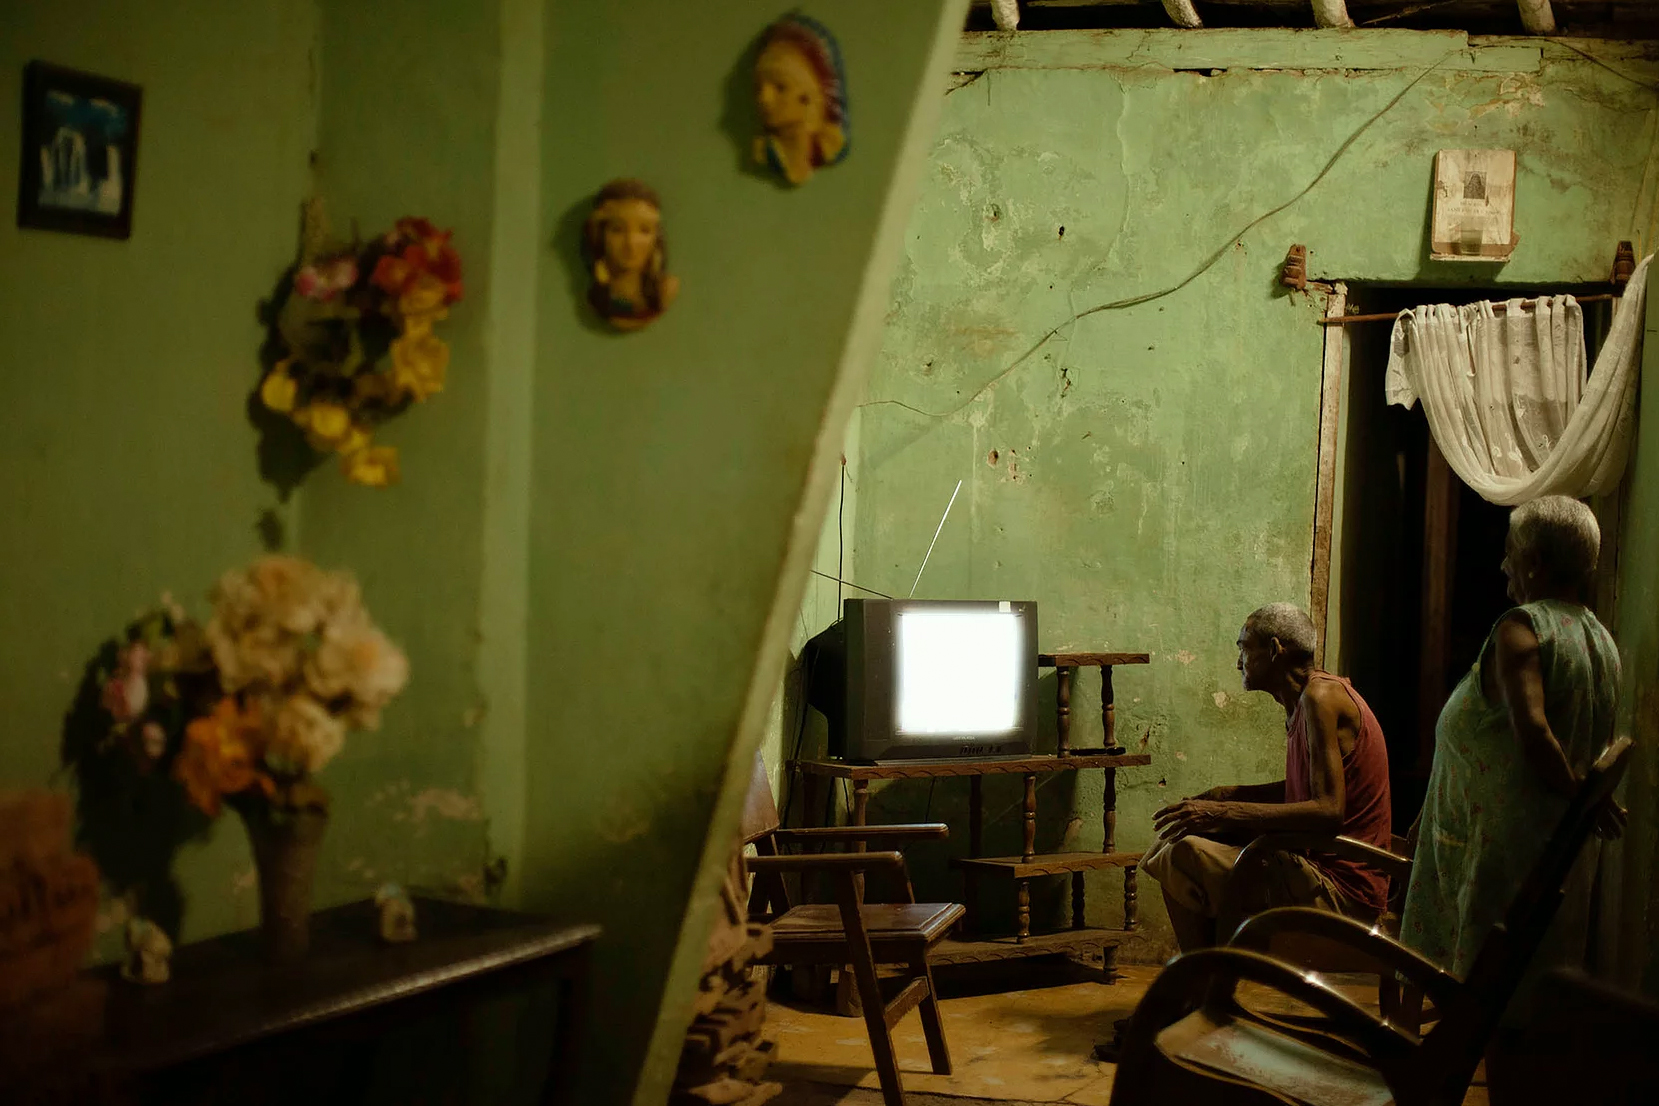 Color photo by Alex Almeida, home interior, Cuba